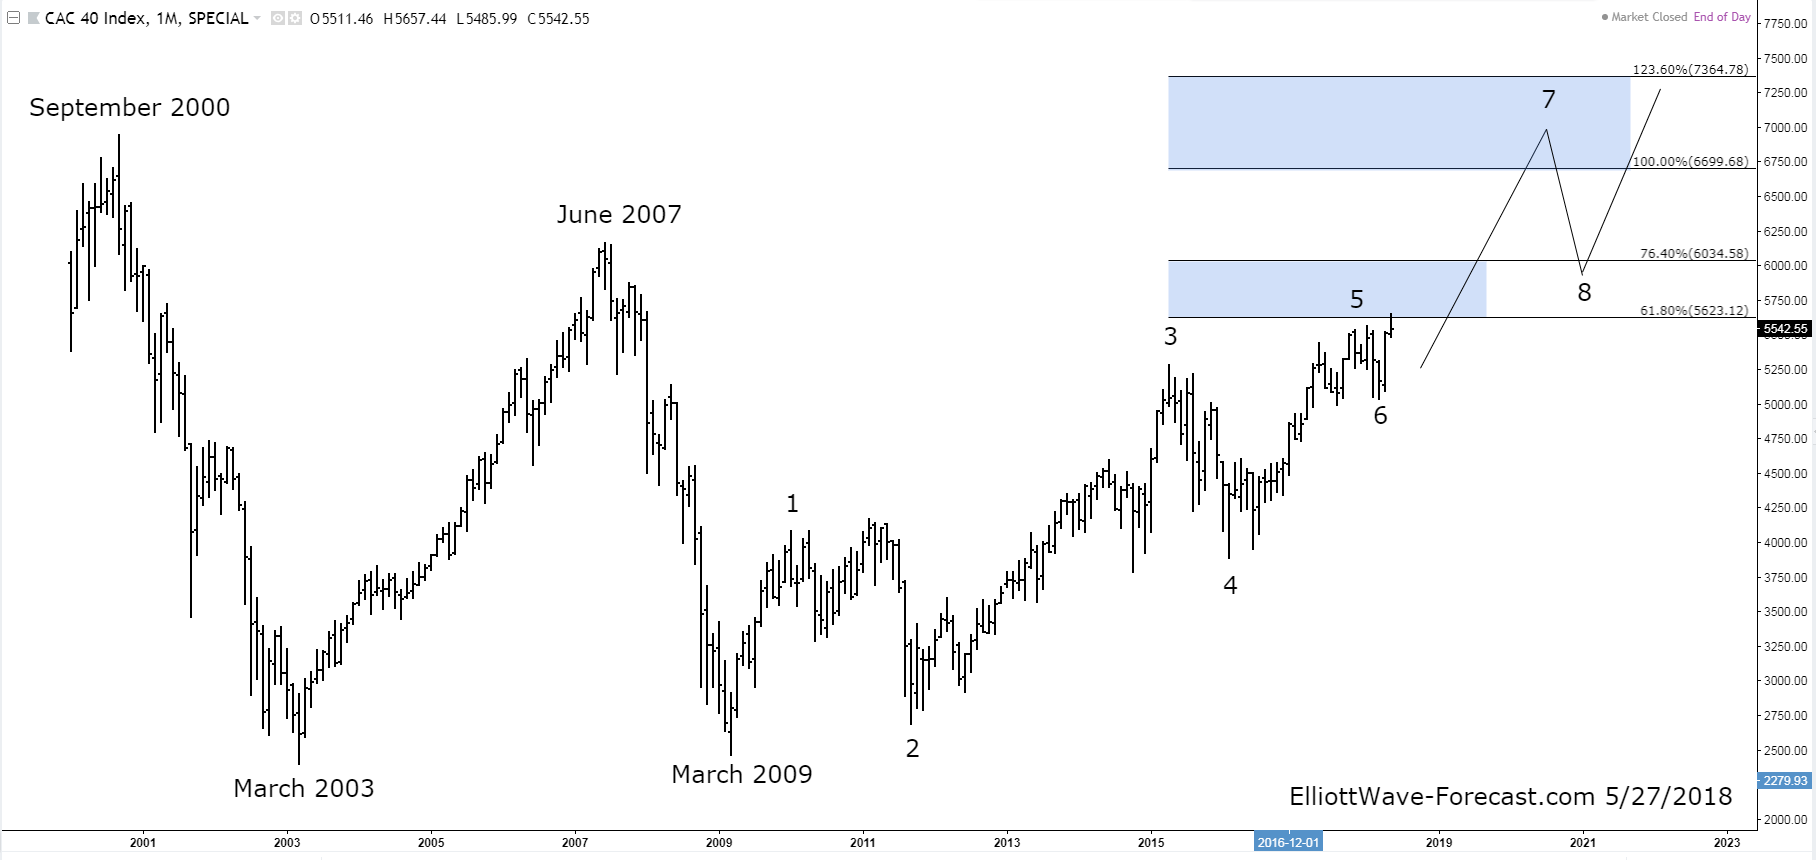 The CAC 40 Index Long Term Bullish Cycles